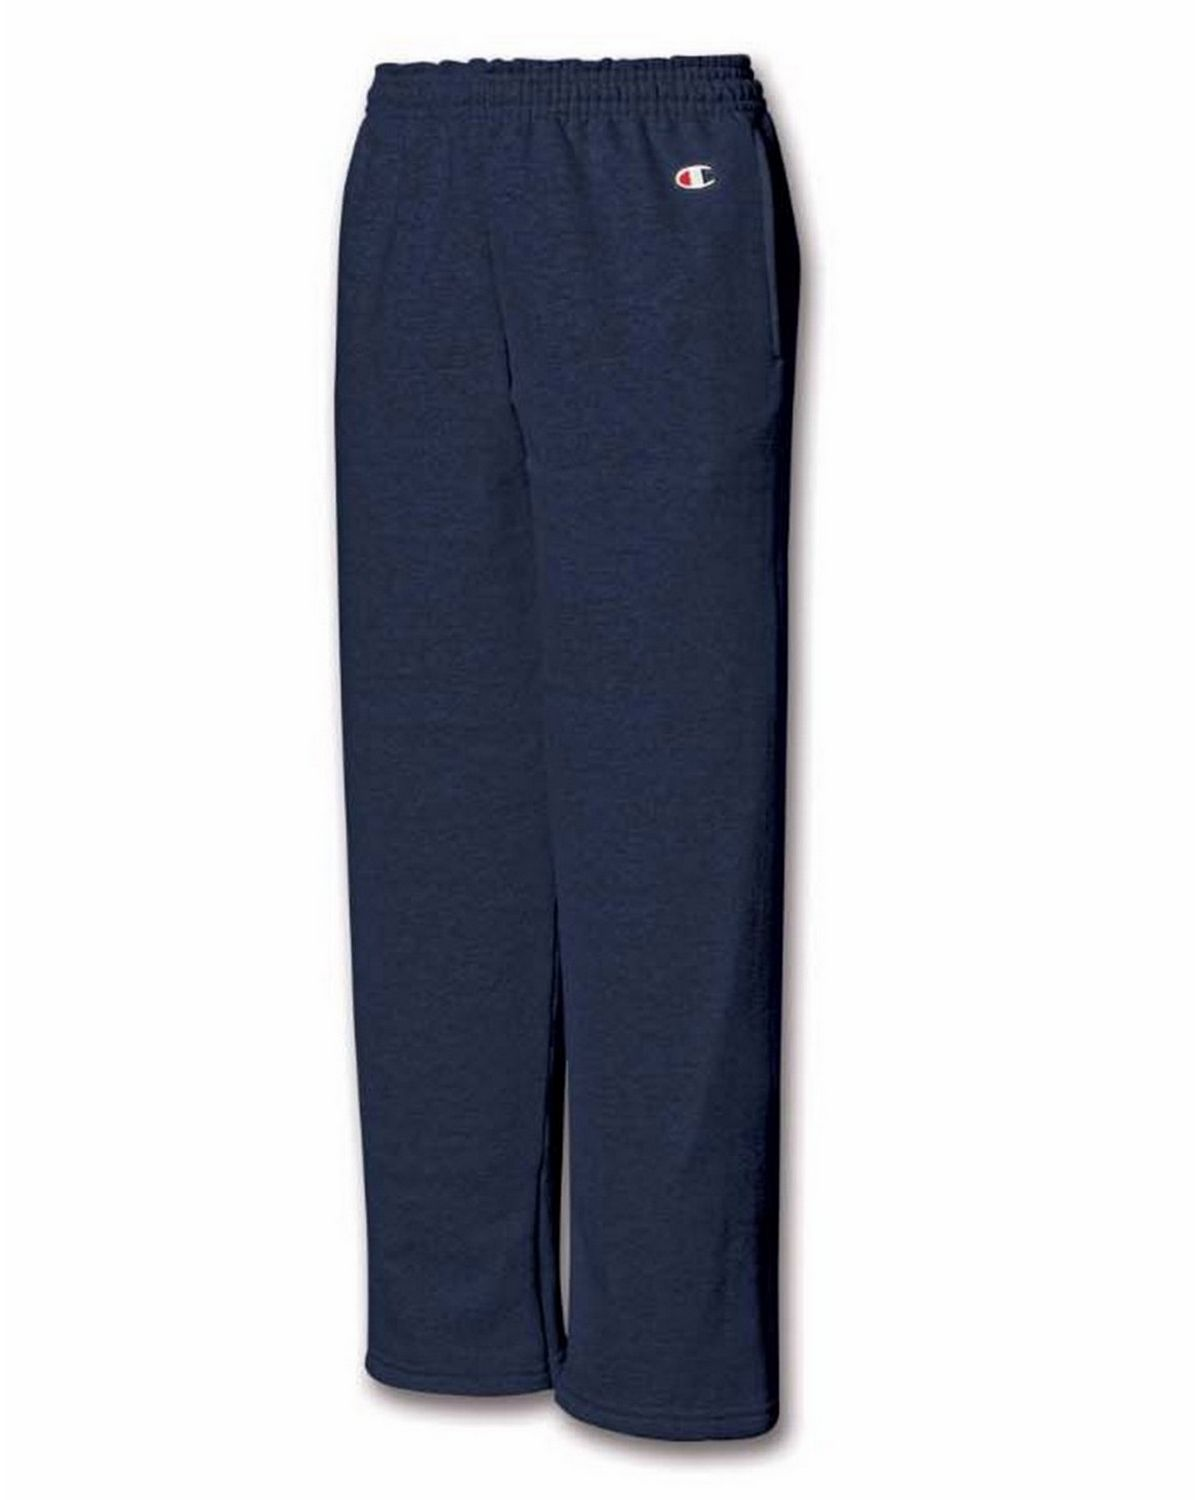 Champion P890 Youth Fleece Open Bottom Pant - Navy - M P890